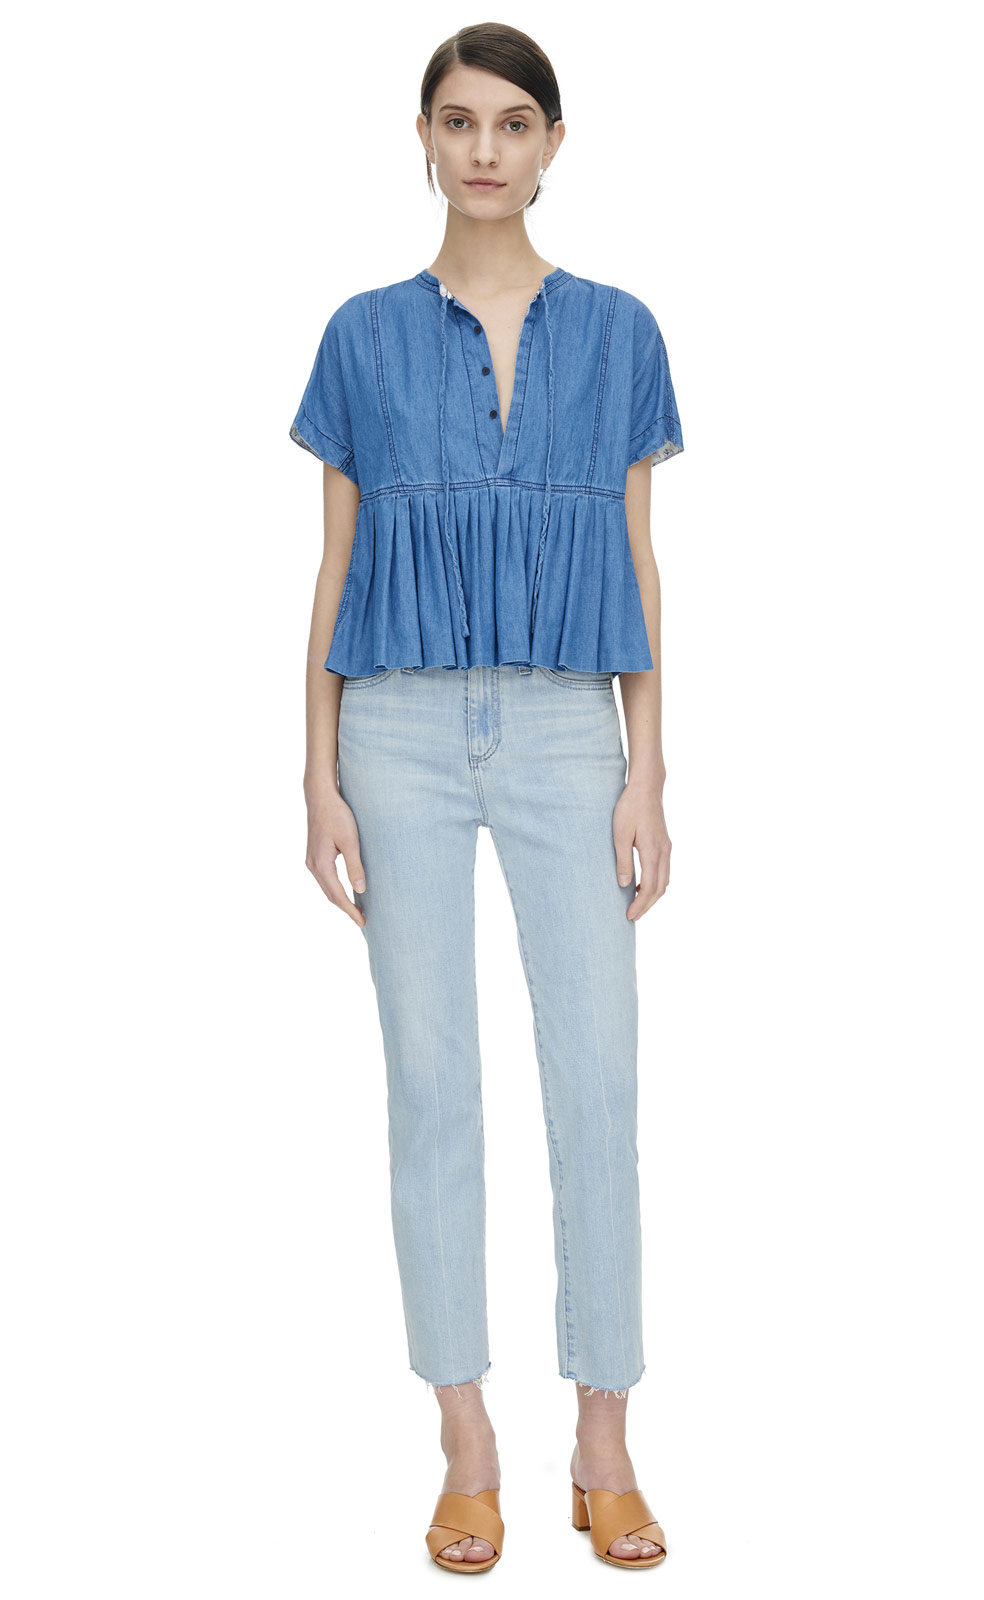 Lyst rebecca taylor short sleeve chambray top in blue for Short sleeve chambray shirt women